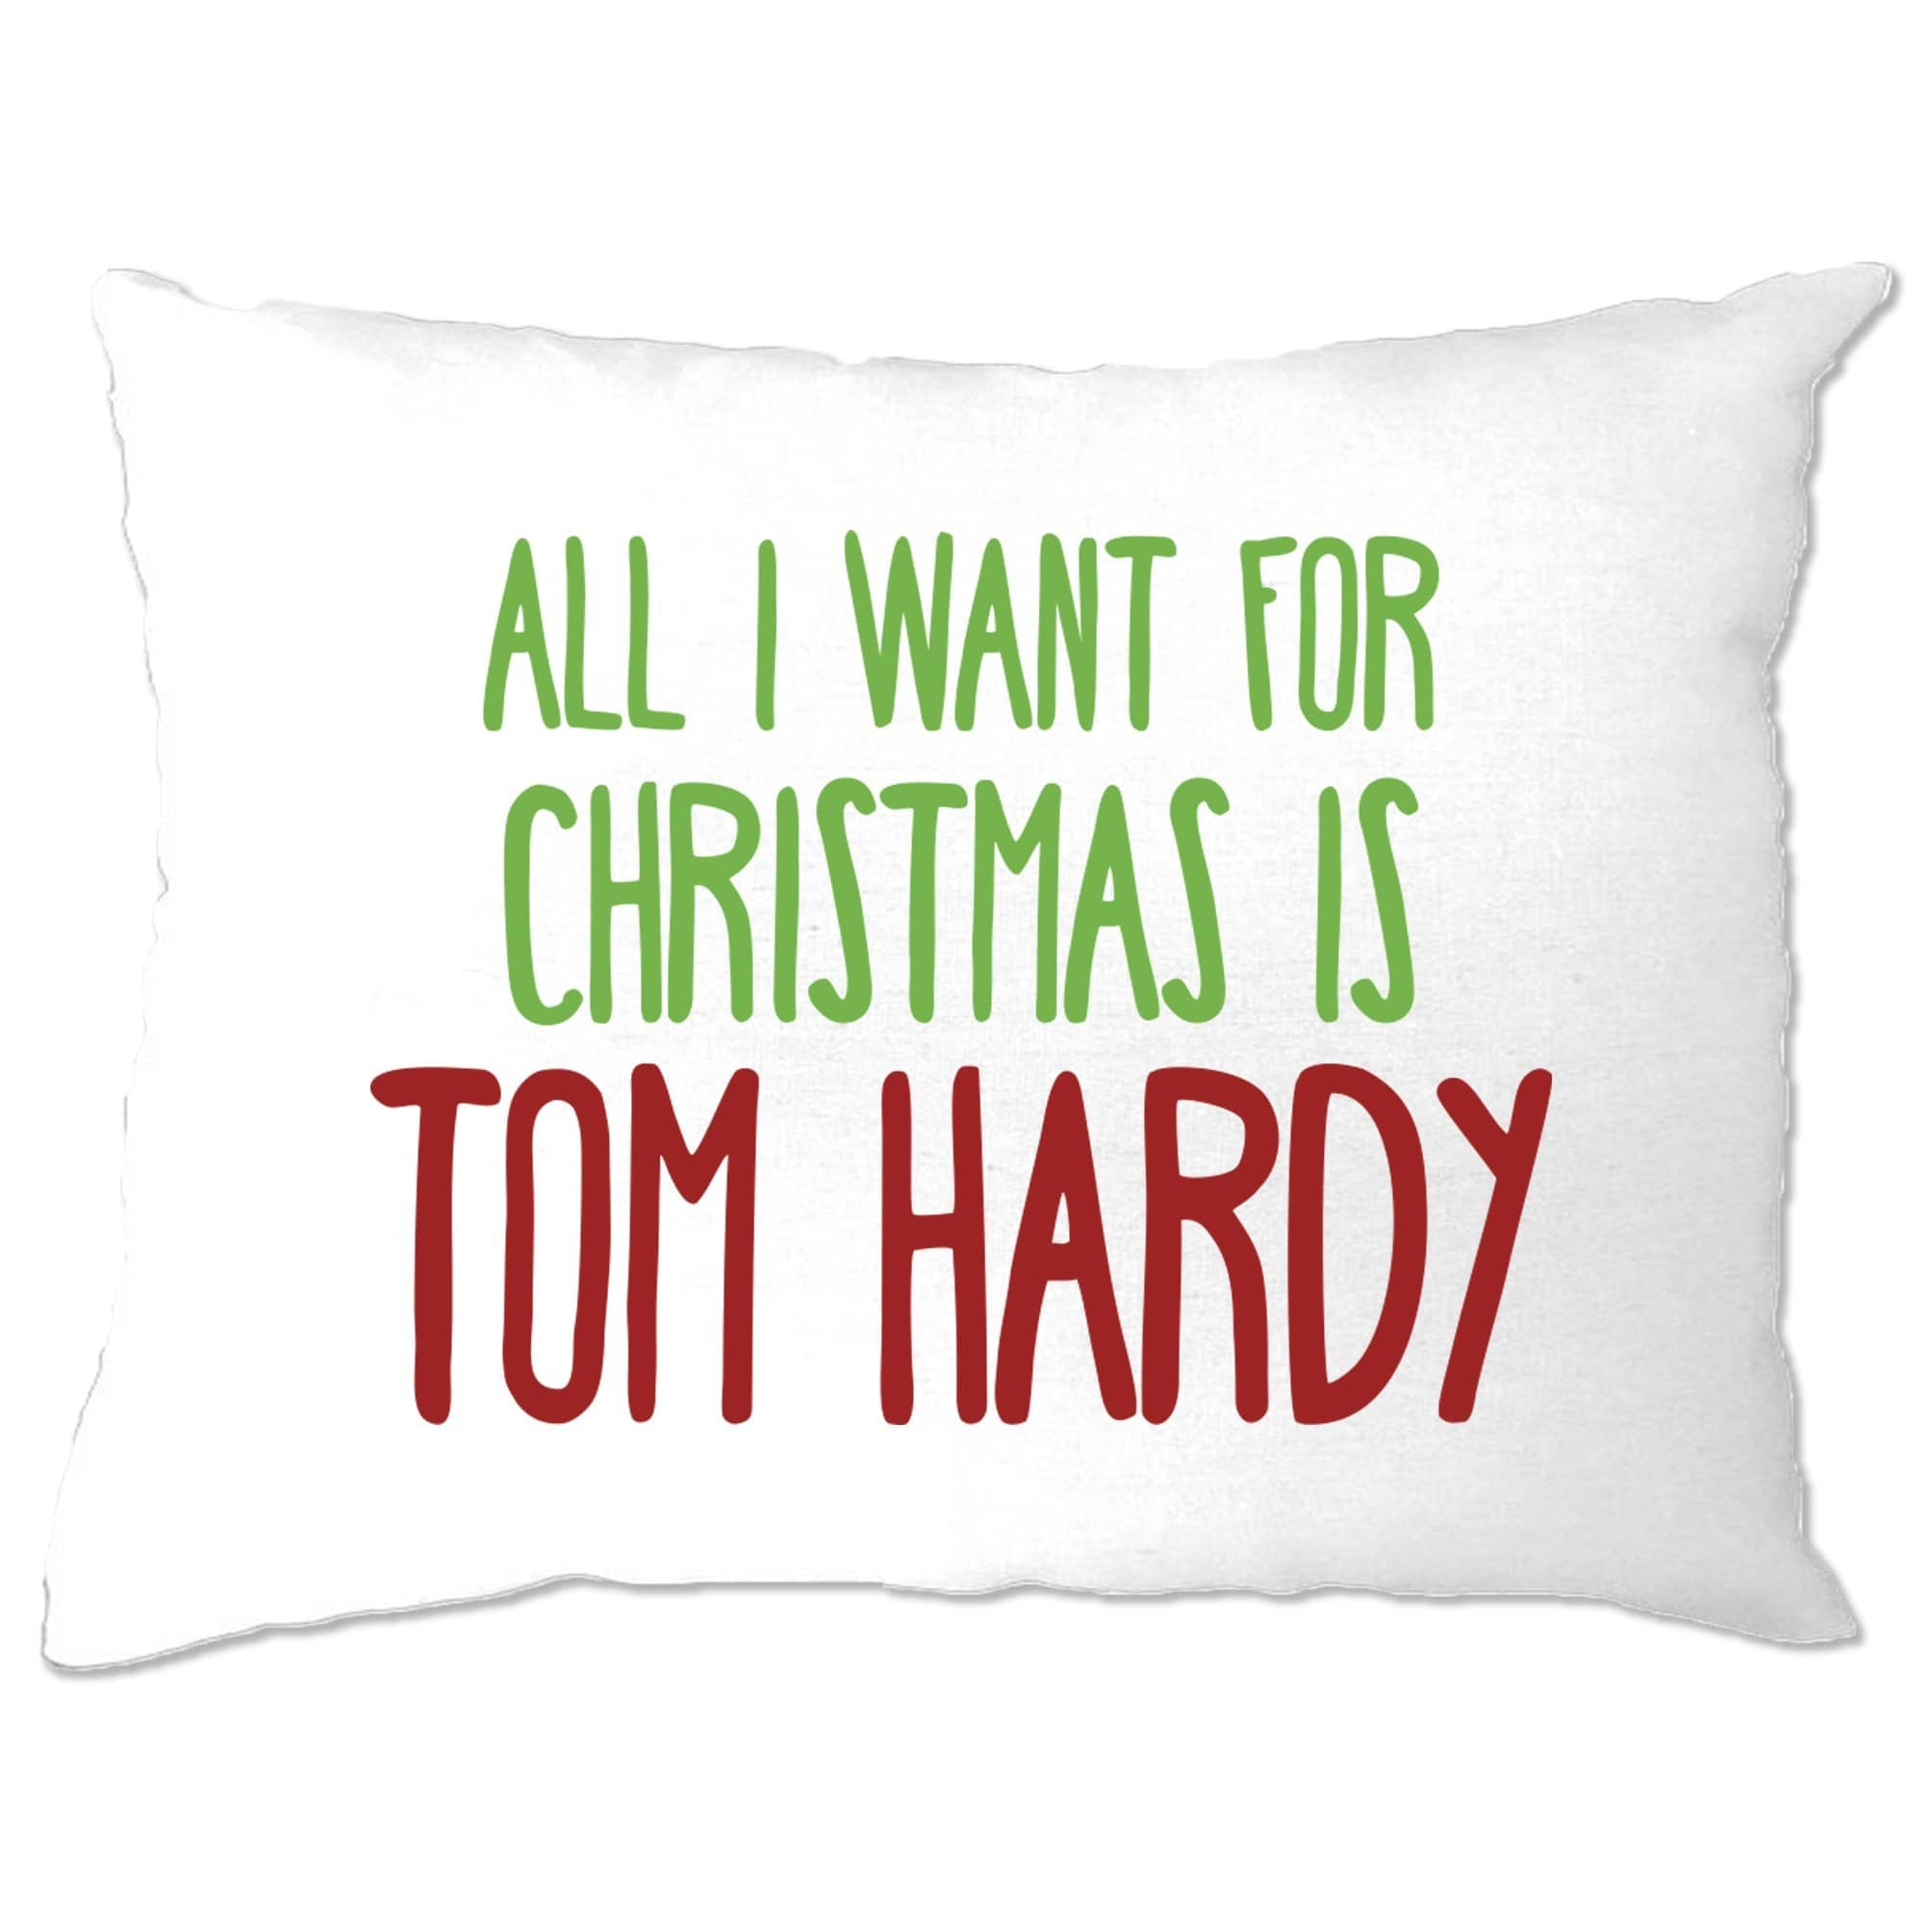 Funny Christmas Pillow Case All I Want For Christmas Is Tom Hardy